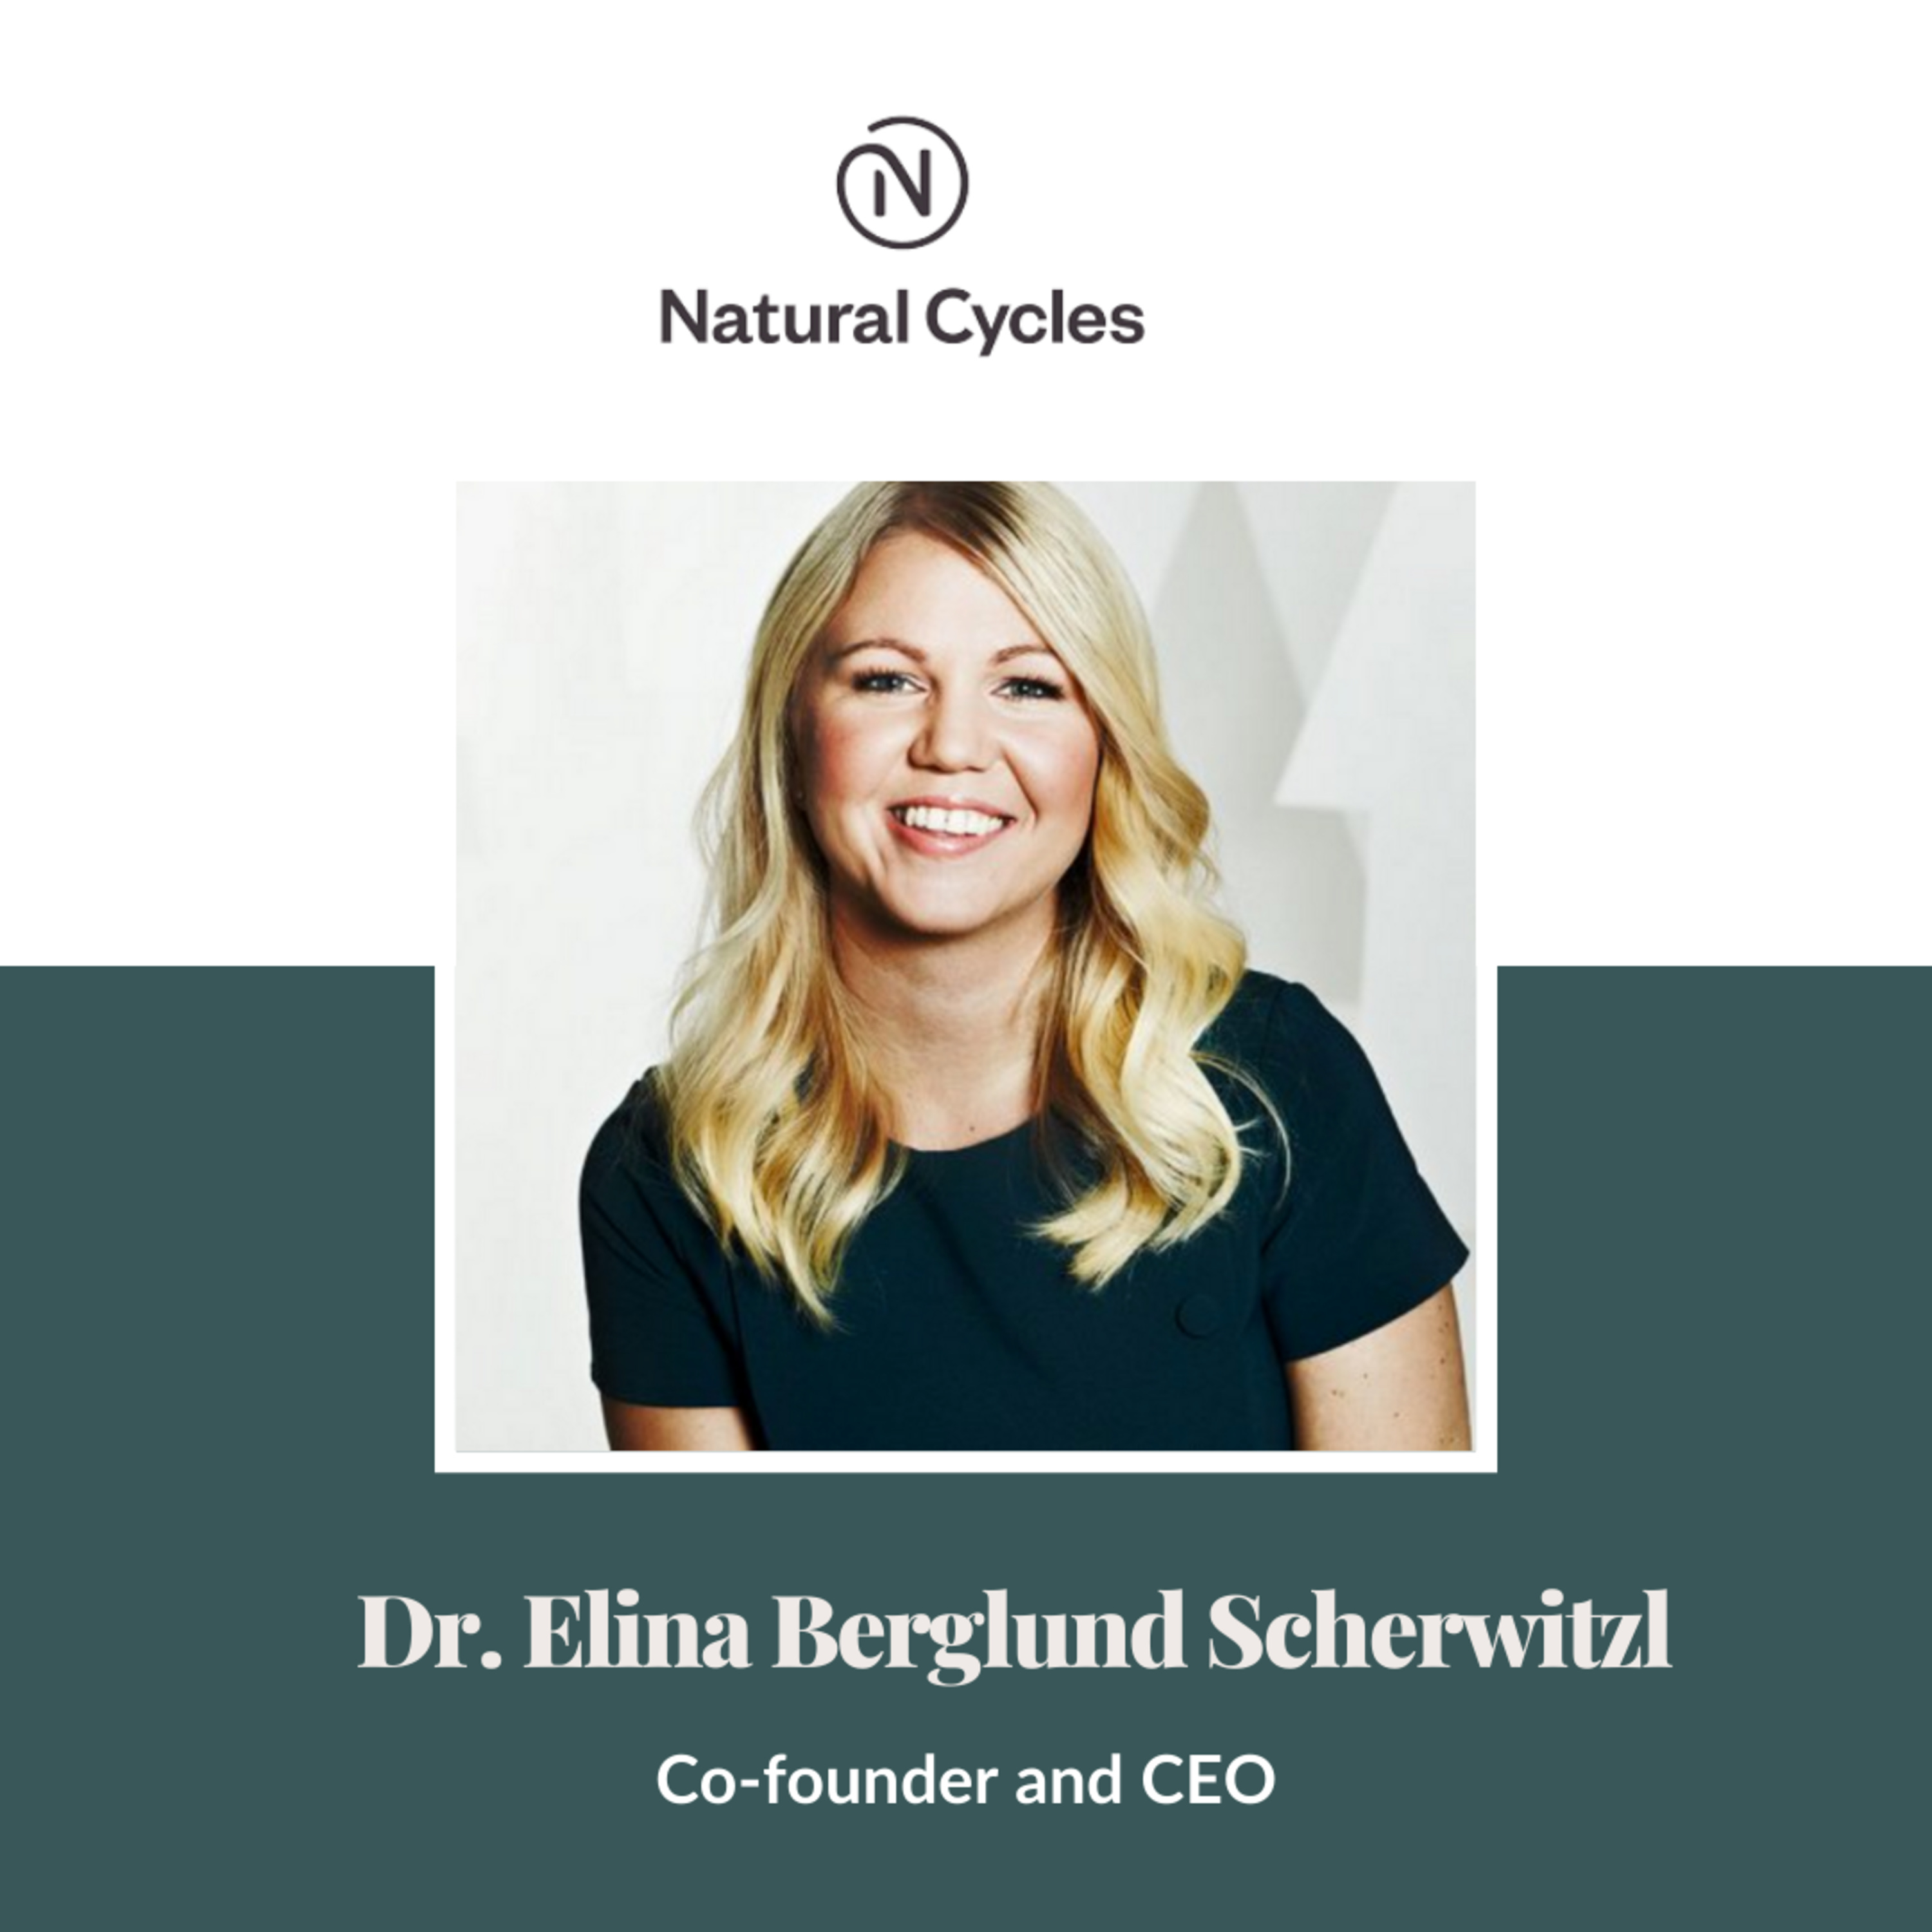 """""""There will be setbacks, but you need to have the patience and the tenacity to keep going because the person who keeps at it is the one that wins in the end."""" - Dr. Elina Berglund Scherwitzl"""